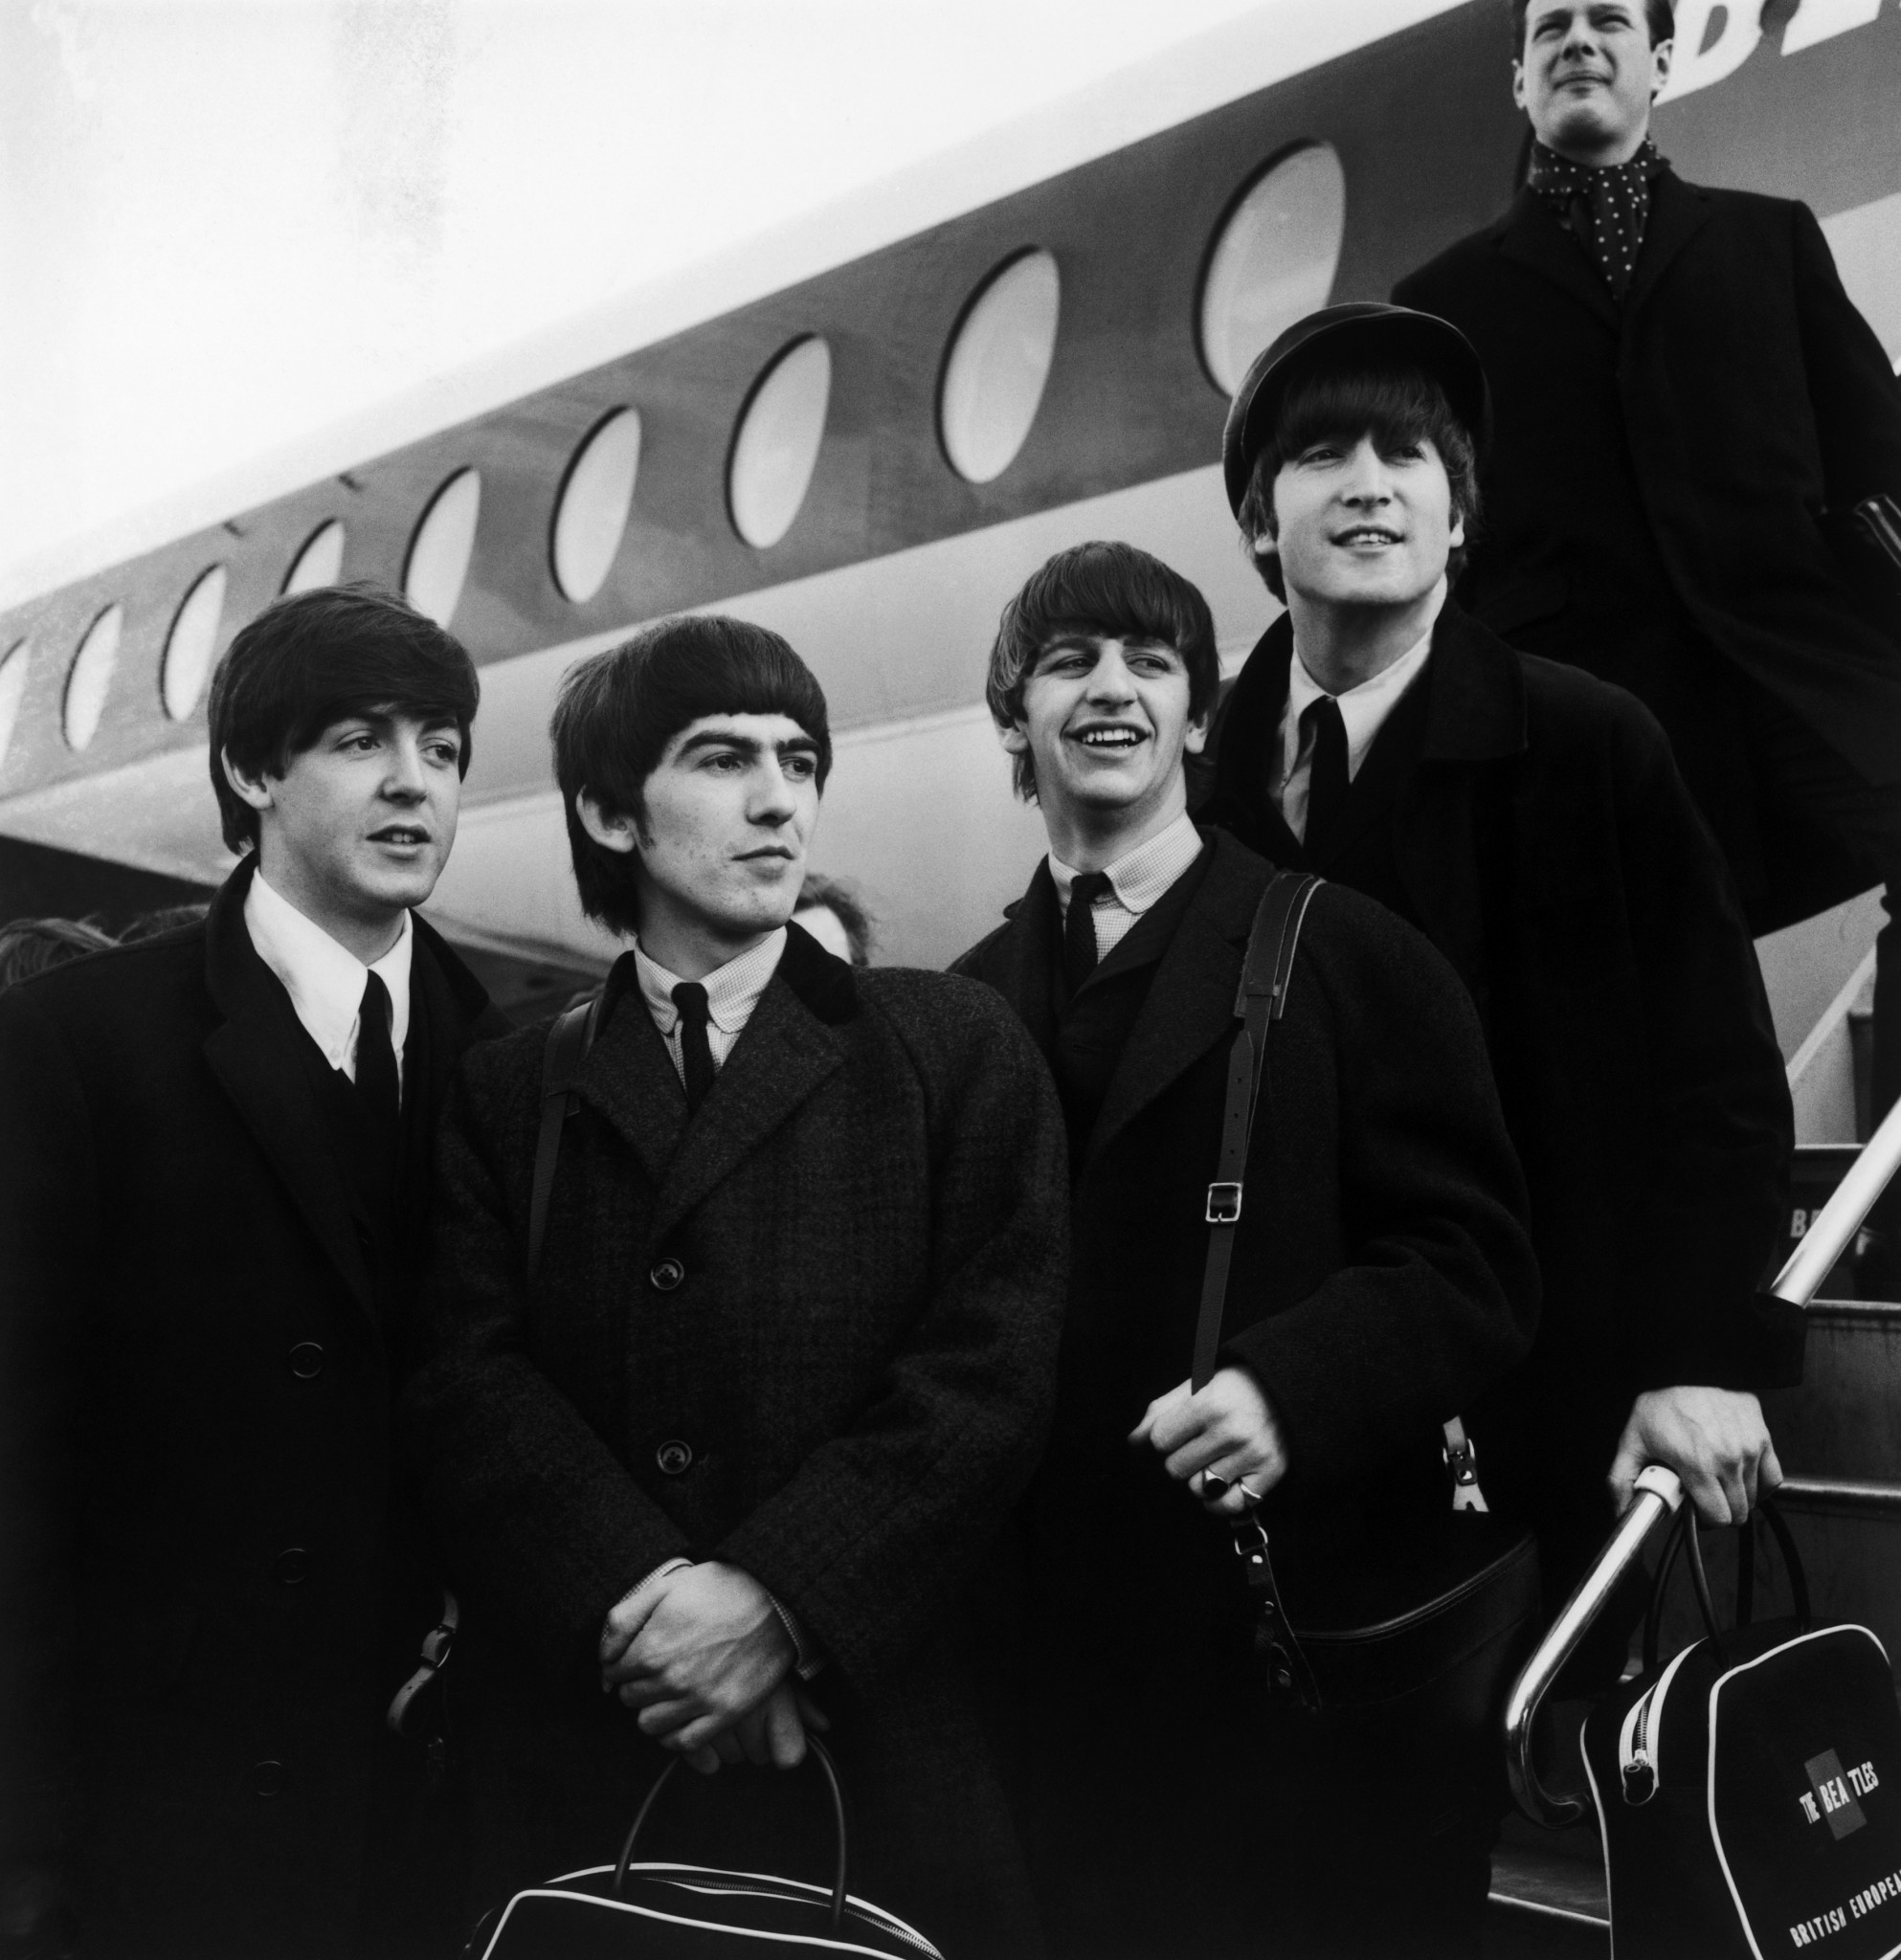 The Beatles board a plane at the height of Beatlemania